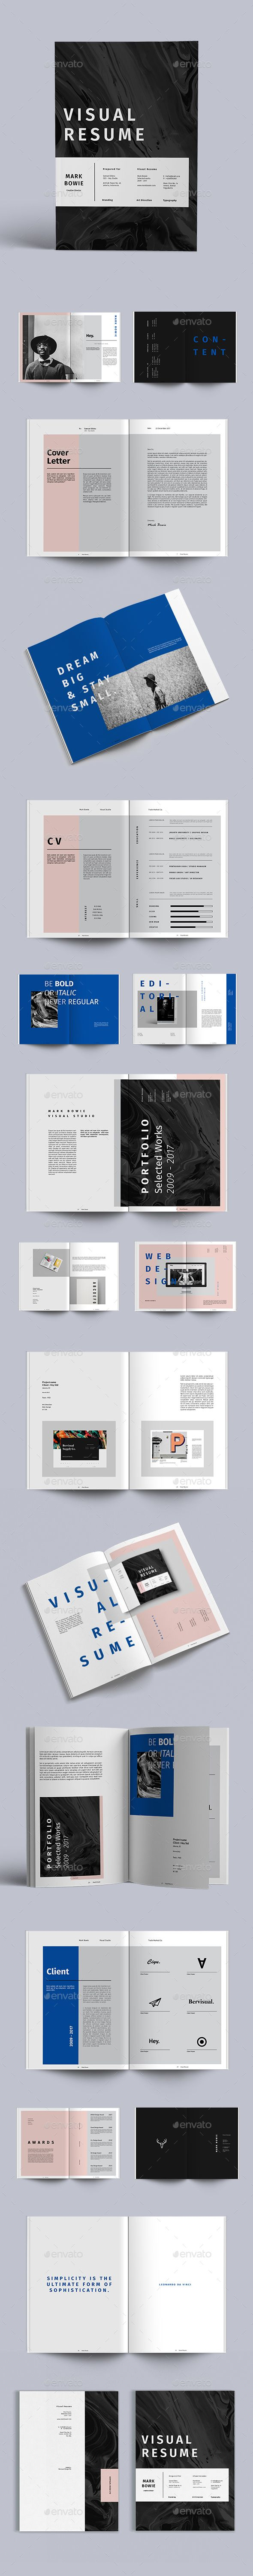 Visual Resume  Indesign Indd Print Template  Download  Https